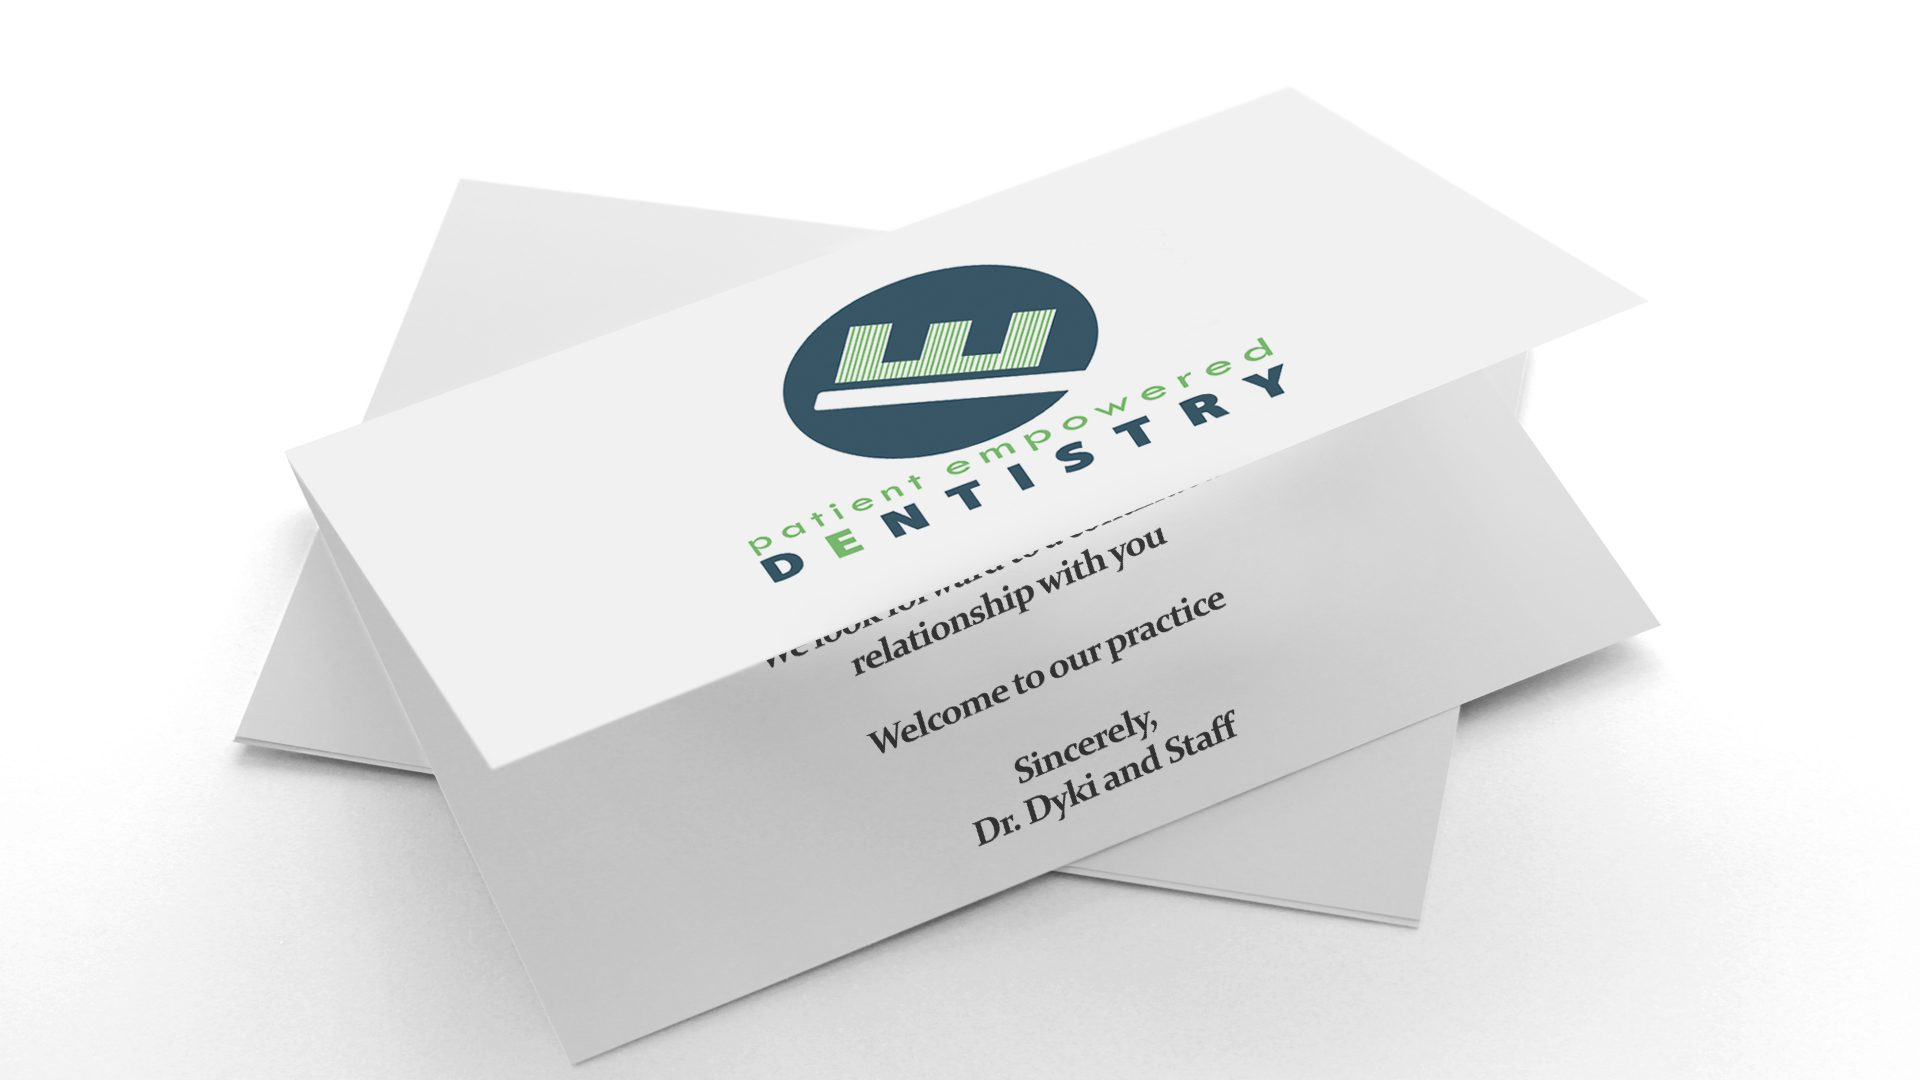 Patient Empowered Dentistry - New Patient Cards Mockup 01